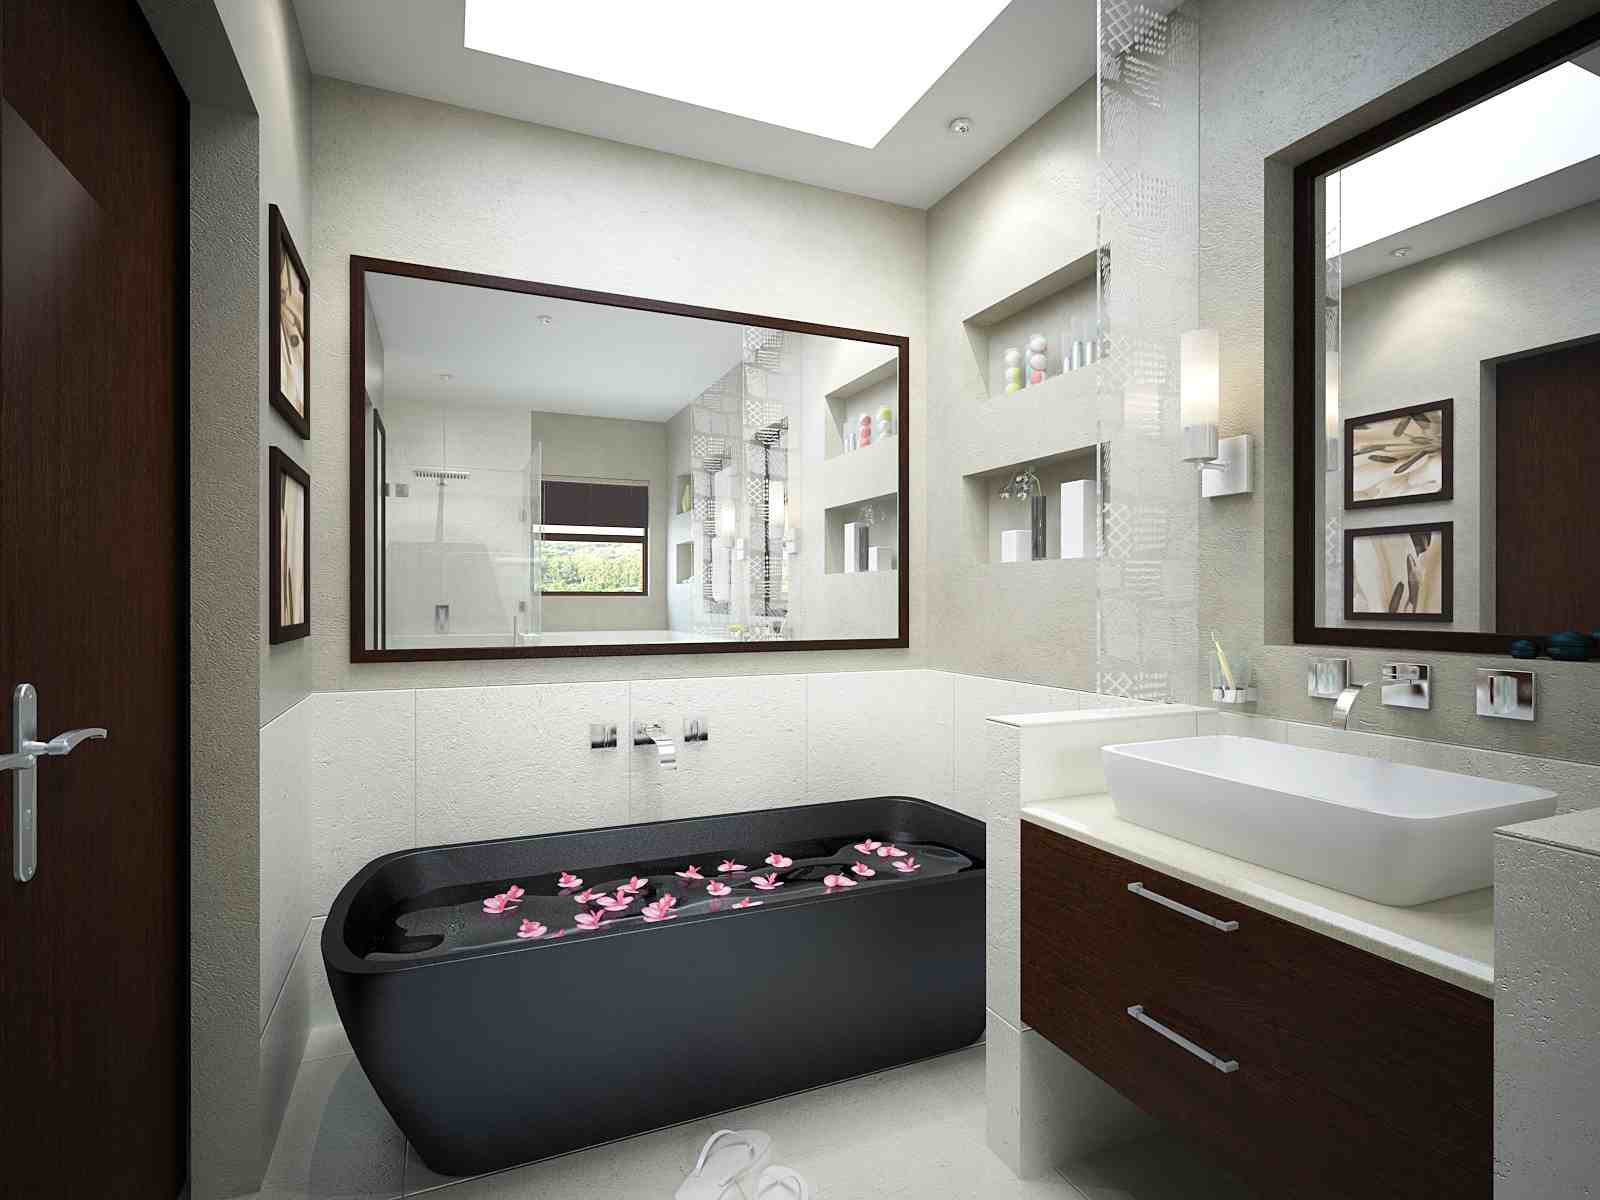 Bathroom Skylight Design Ideas | HomesFeed